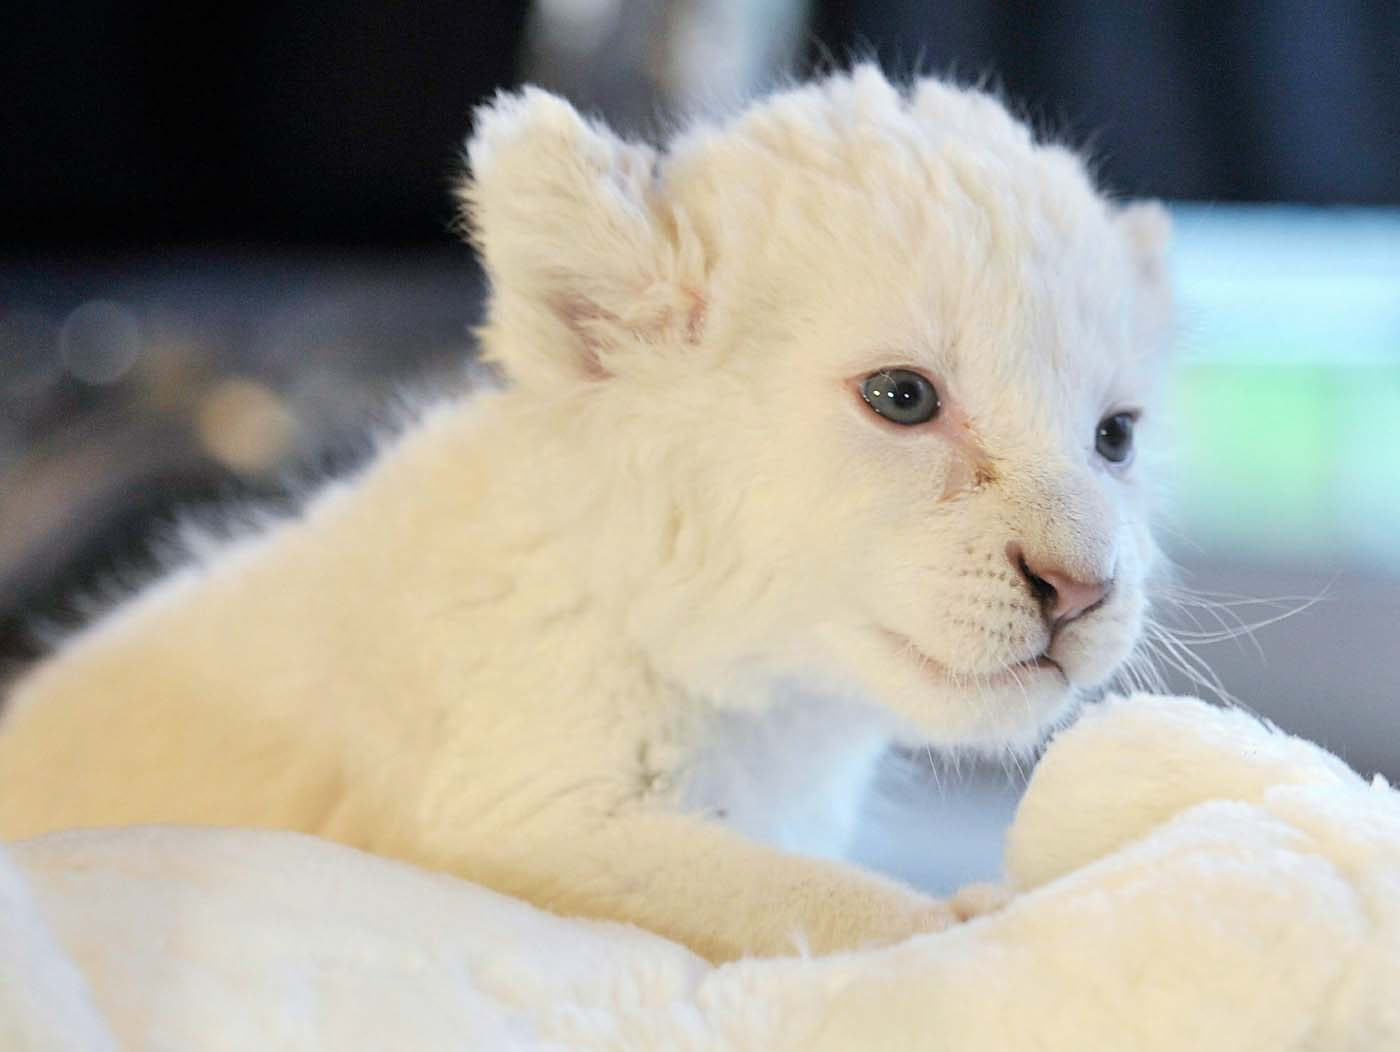 One of four baby white lions is presented to journalists at a Safari park in the western German city of Schloss Holte-Stukenbrock on May 6, 2010. The baby lions were born in the park in March and are being raised by the zoo keepers there. (Mark Keppler/AFP/Getty Images)